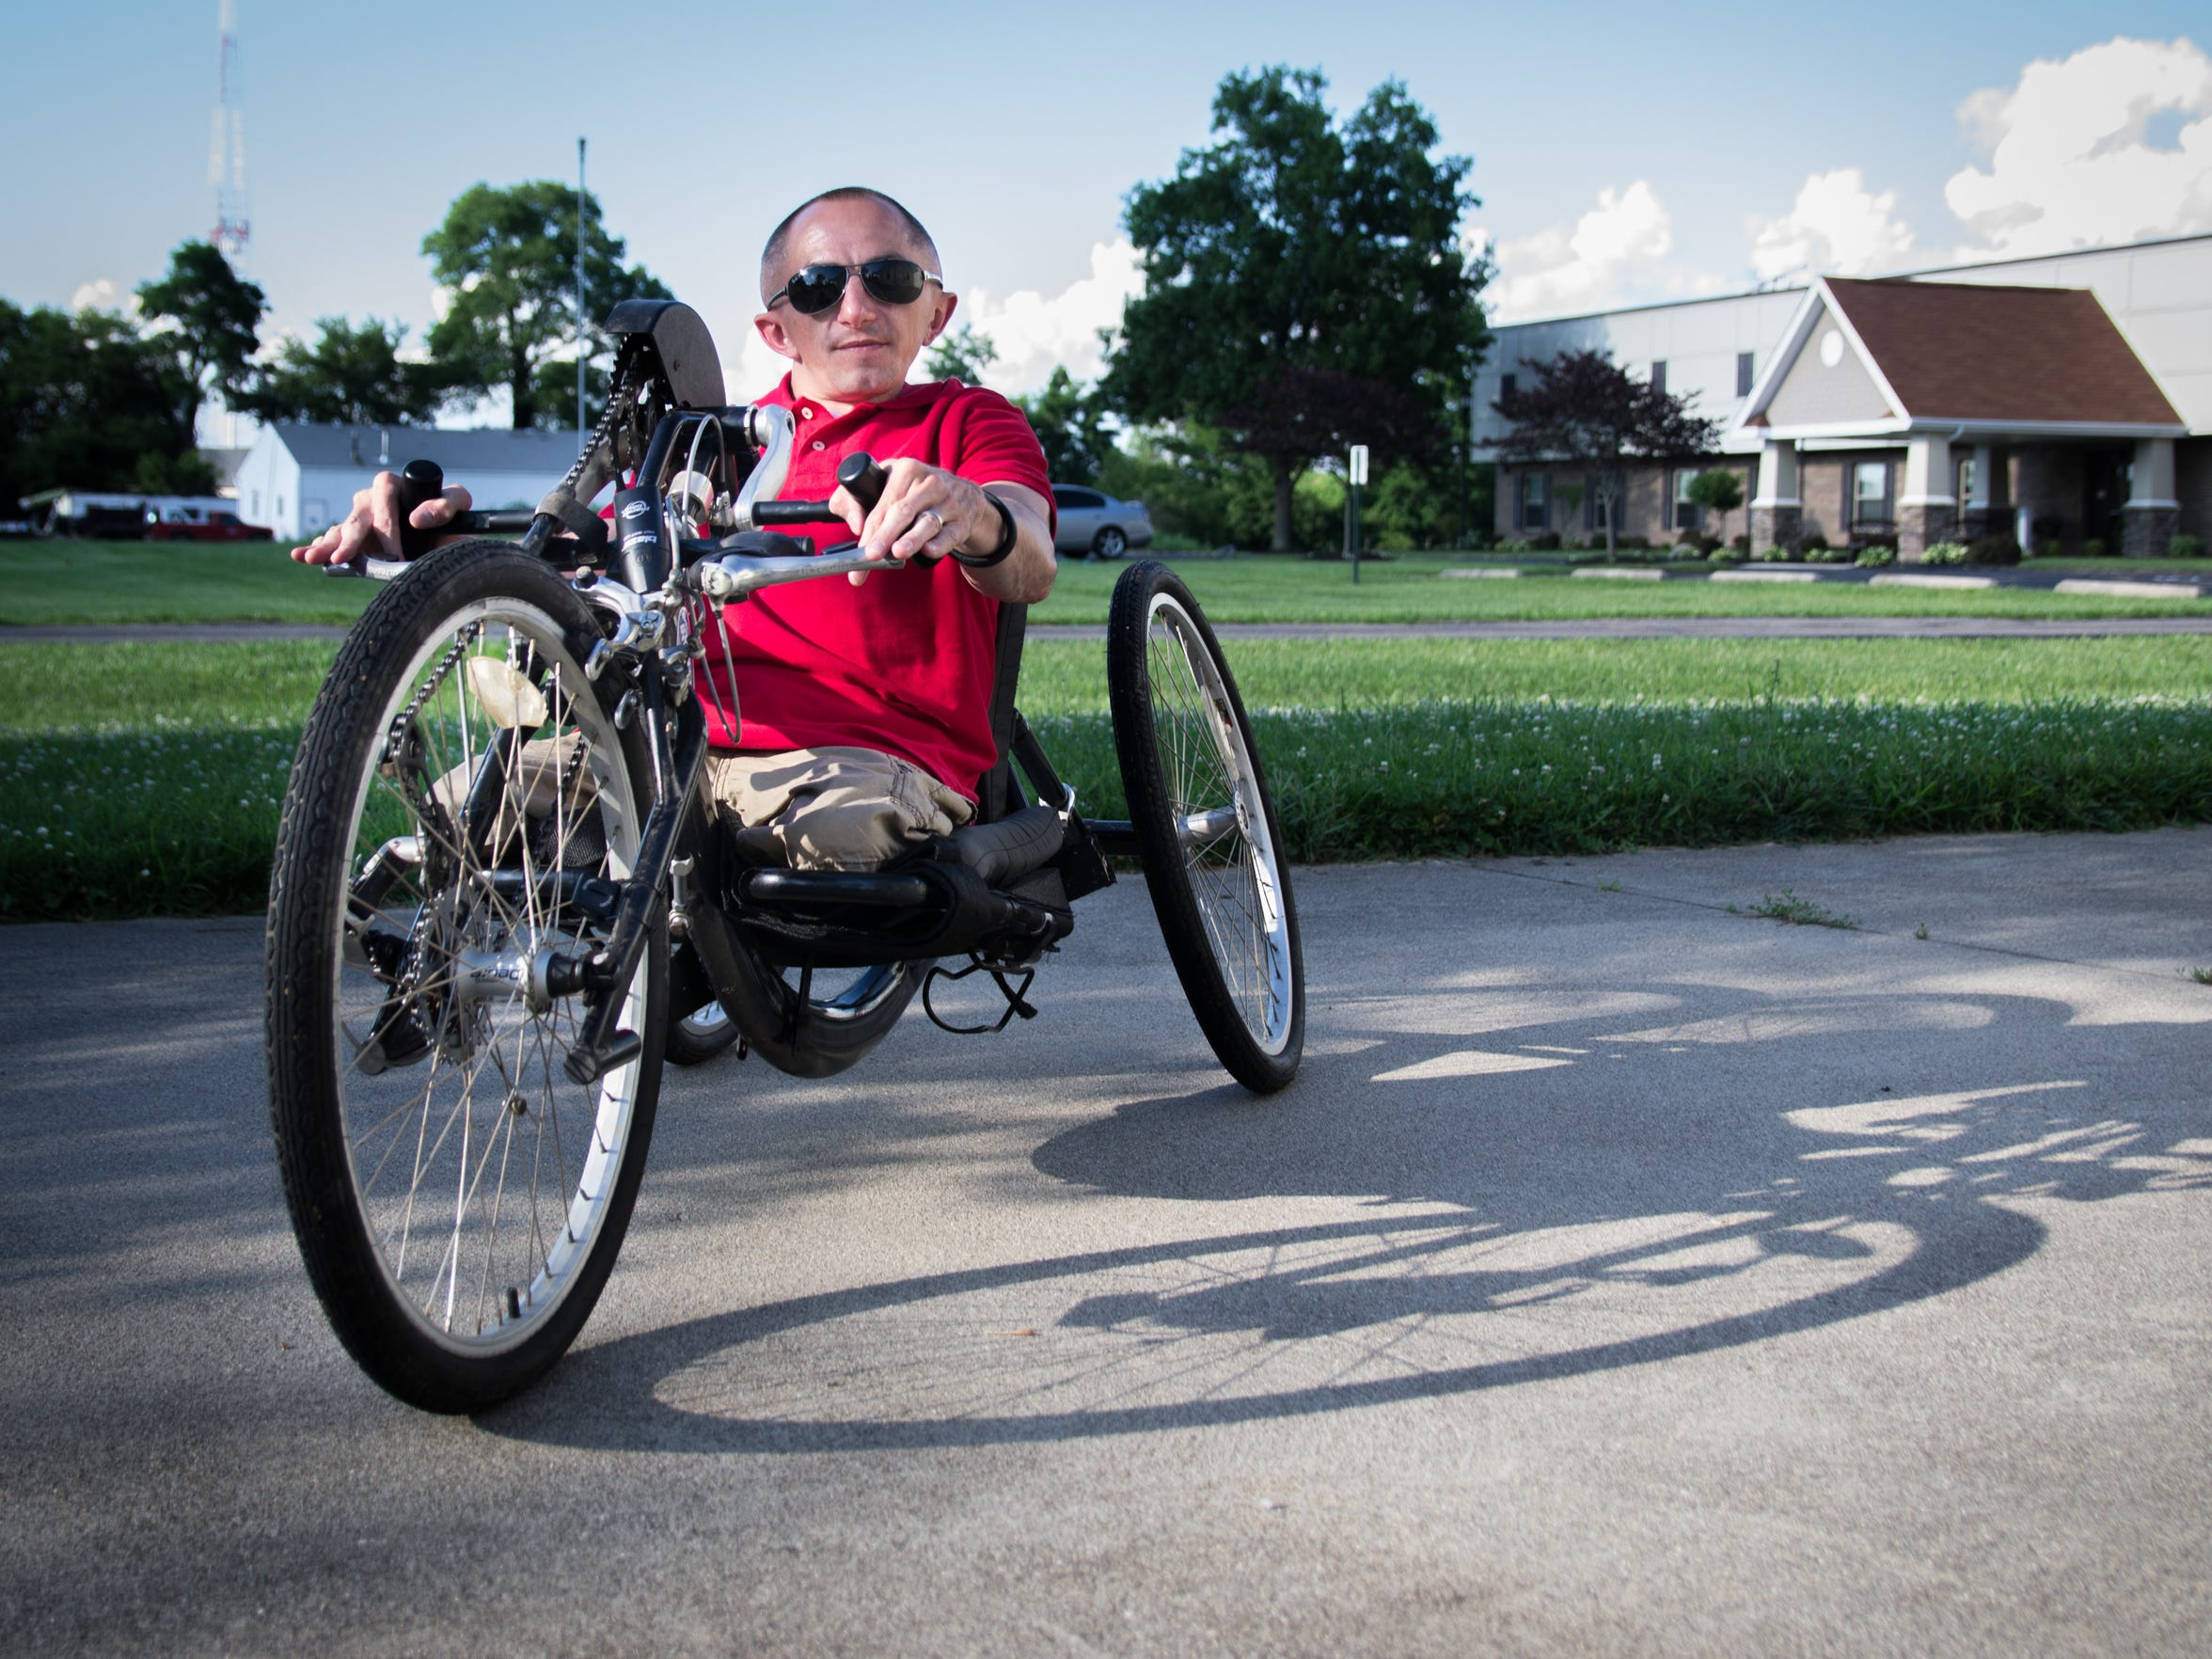 Adam Ayers works as an inclusion specialist with the Cincinnati Recreation Commission, where he works to make sure children are not limited from sports and physical activity due to a disability in addition to providing awareness of those with disabilities.